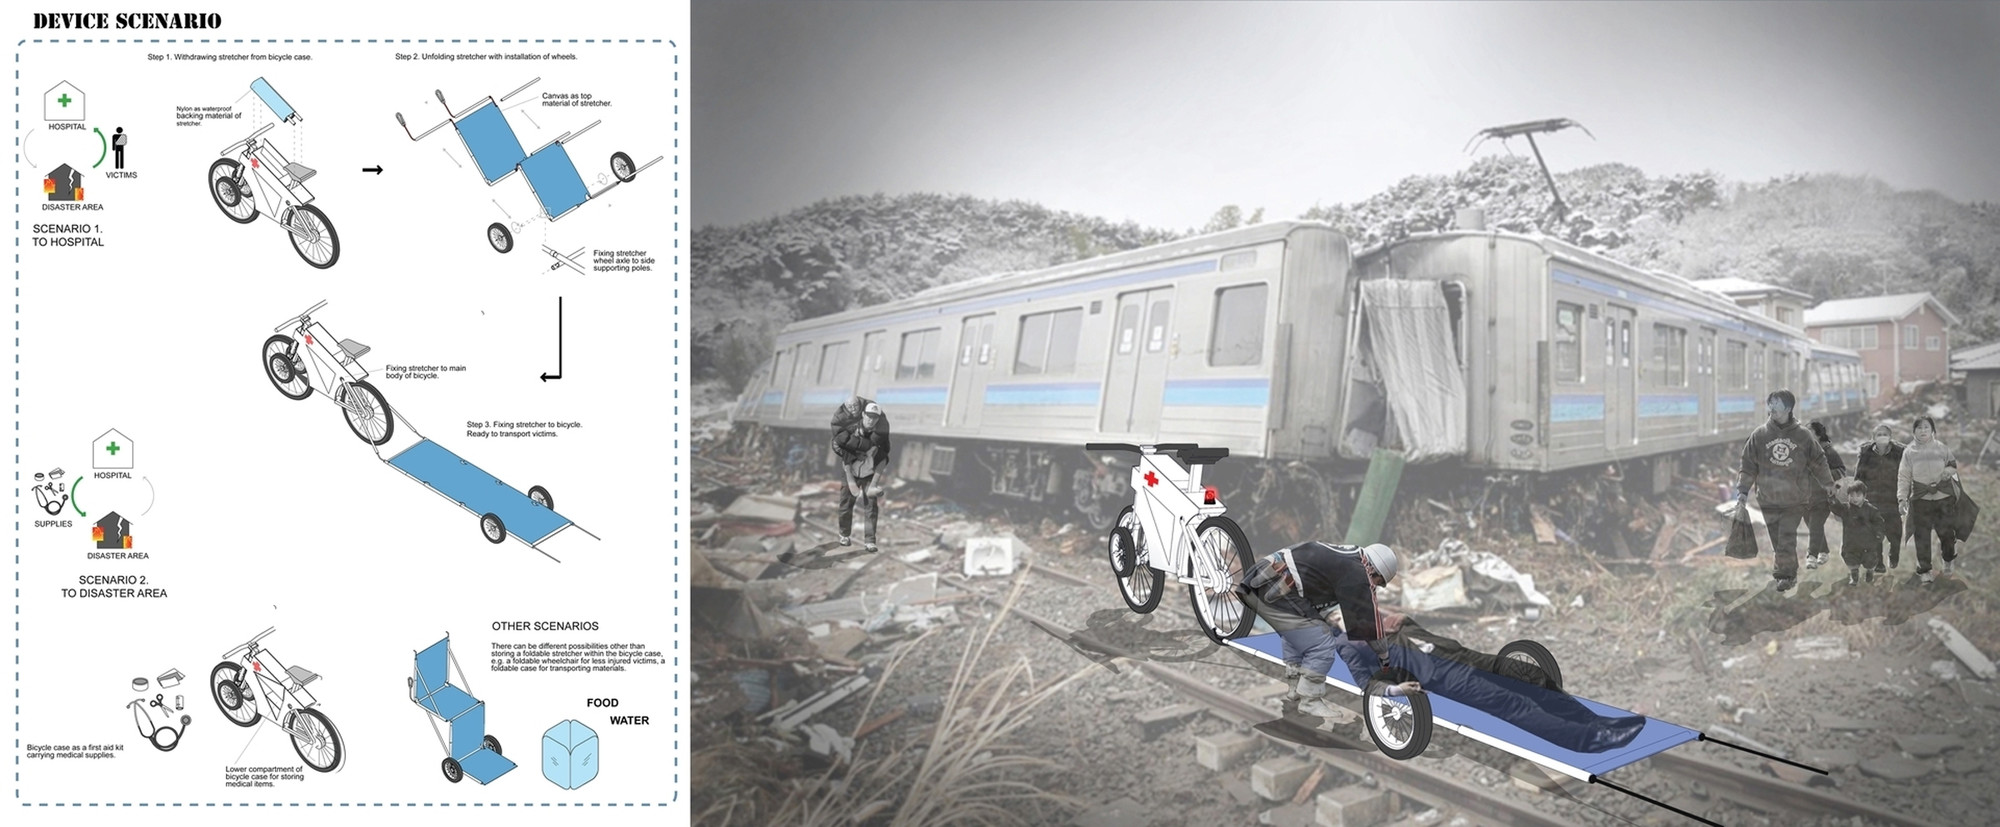 Disaster Intervention Device, image via http://fac.arch.hku.hk/arch/gallery/2011-12/march-studios/michael-kokora/